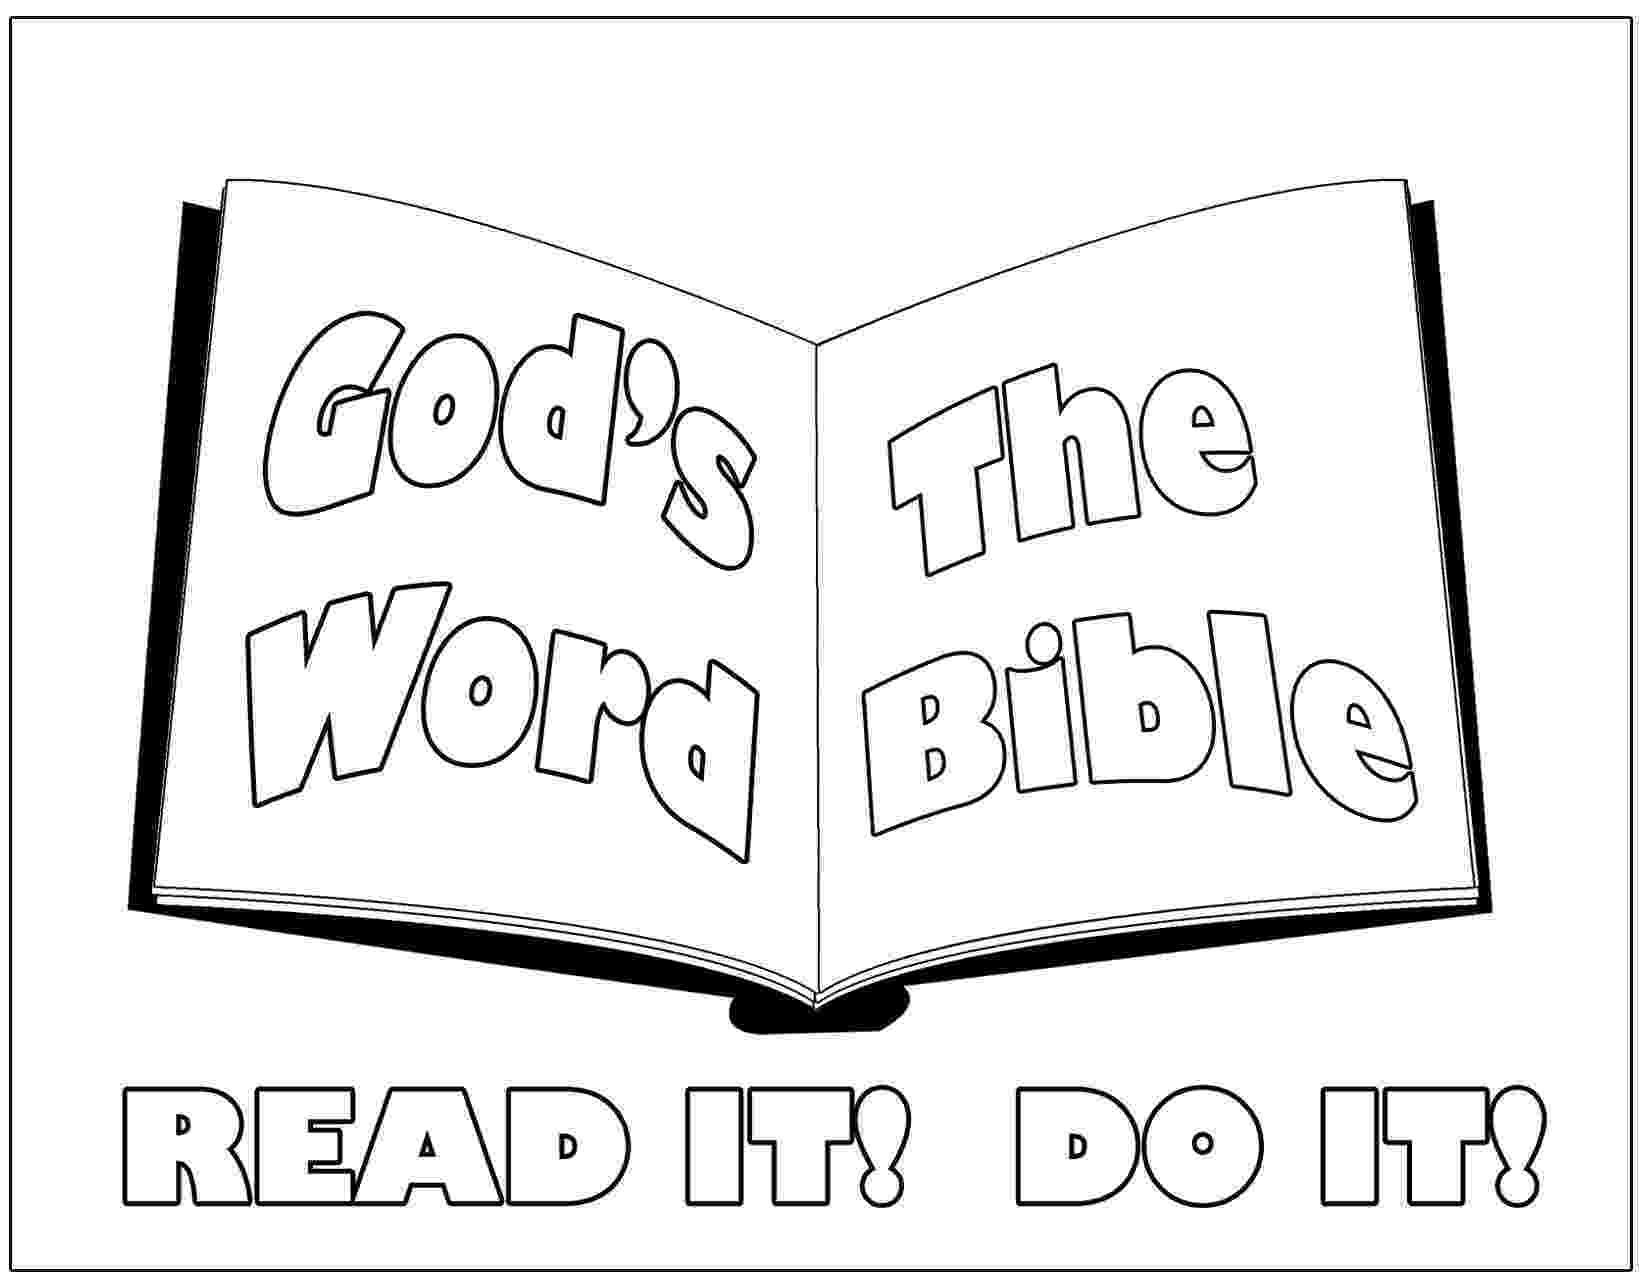 bible coloring pages for kids free printable bible coloring pages for kids coloring pages bible kids for